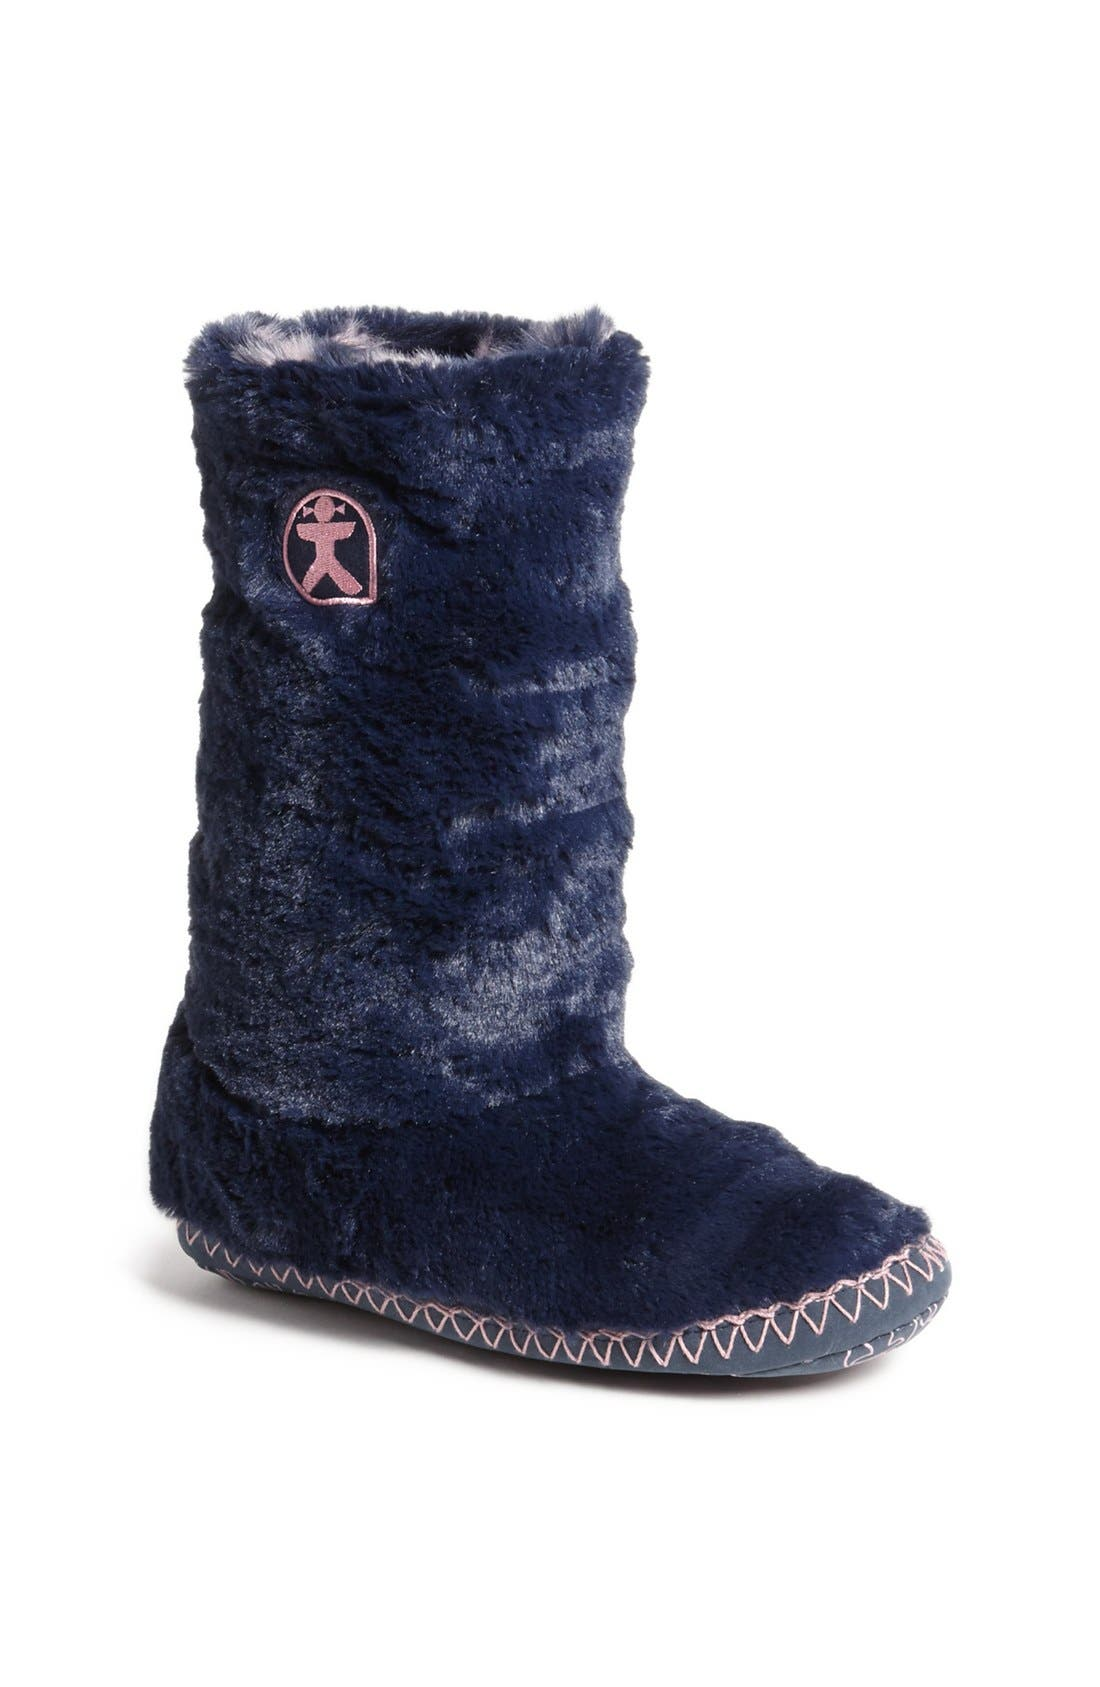 Main Image - Bedroom Athletics 'Sophia' Faux Fur Bootie Slipper